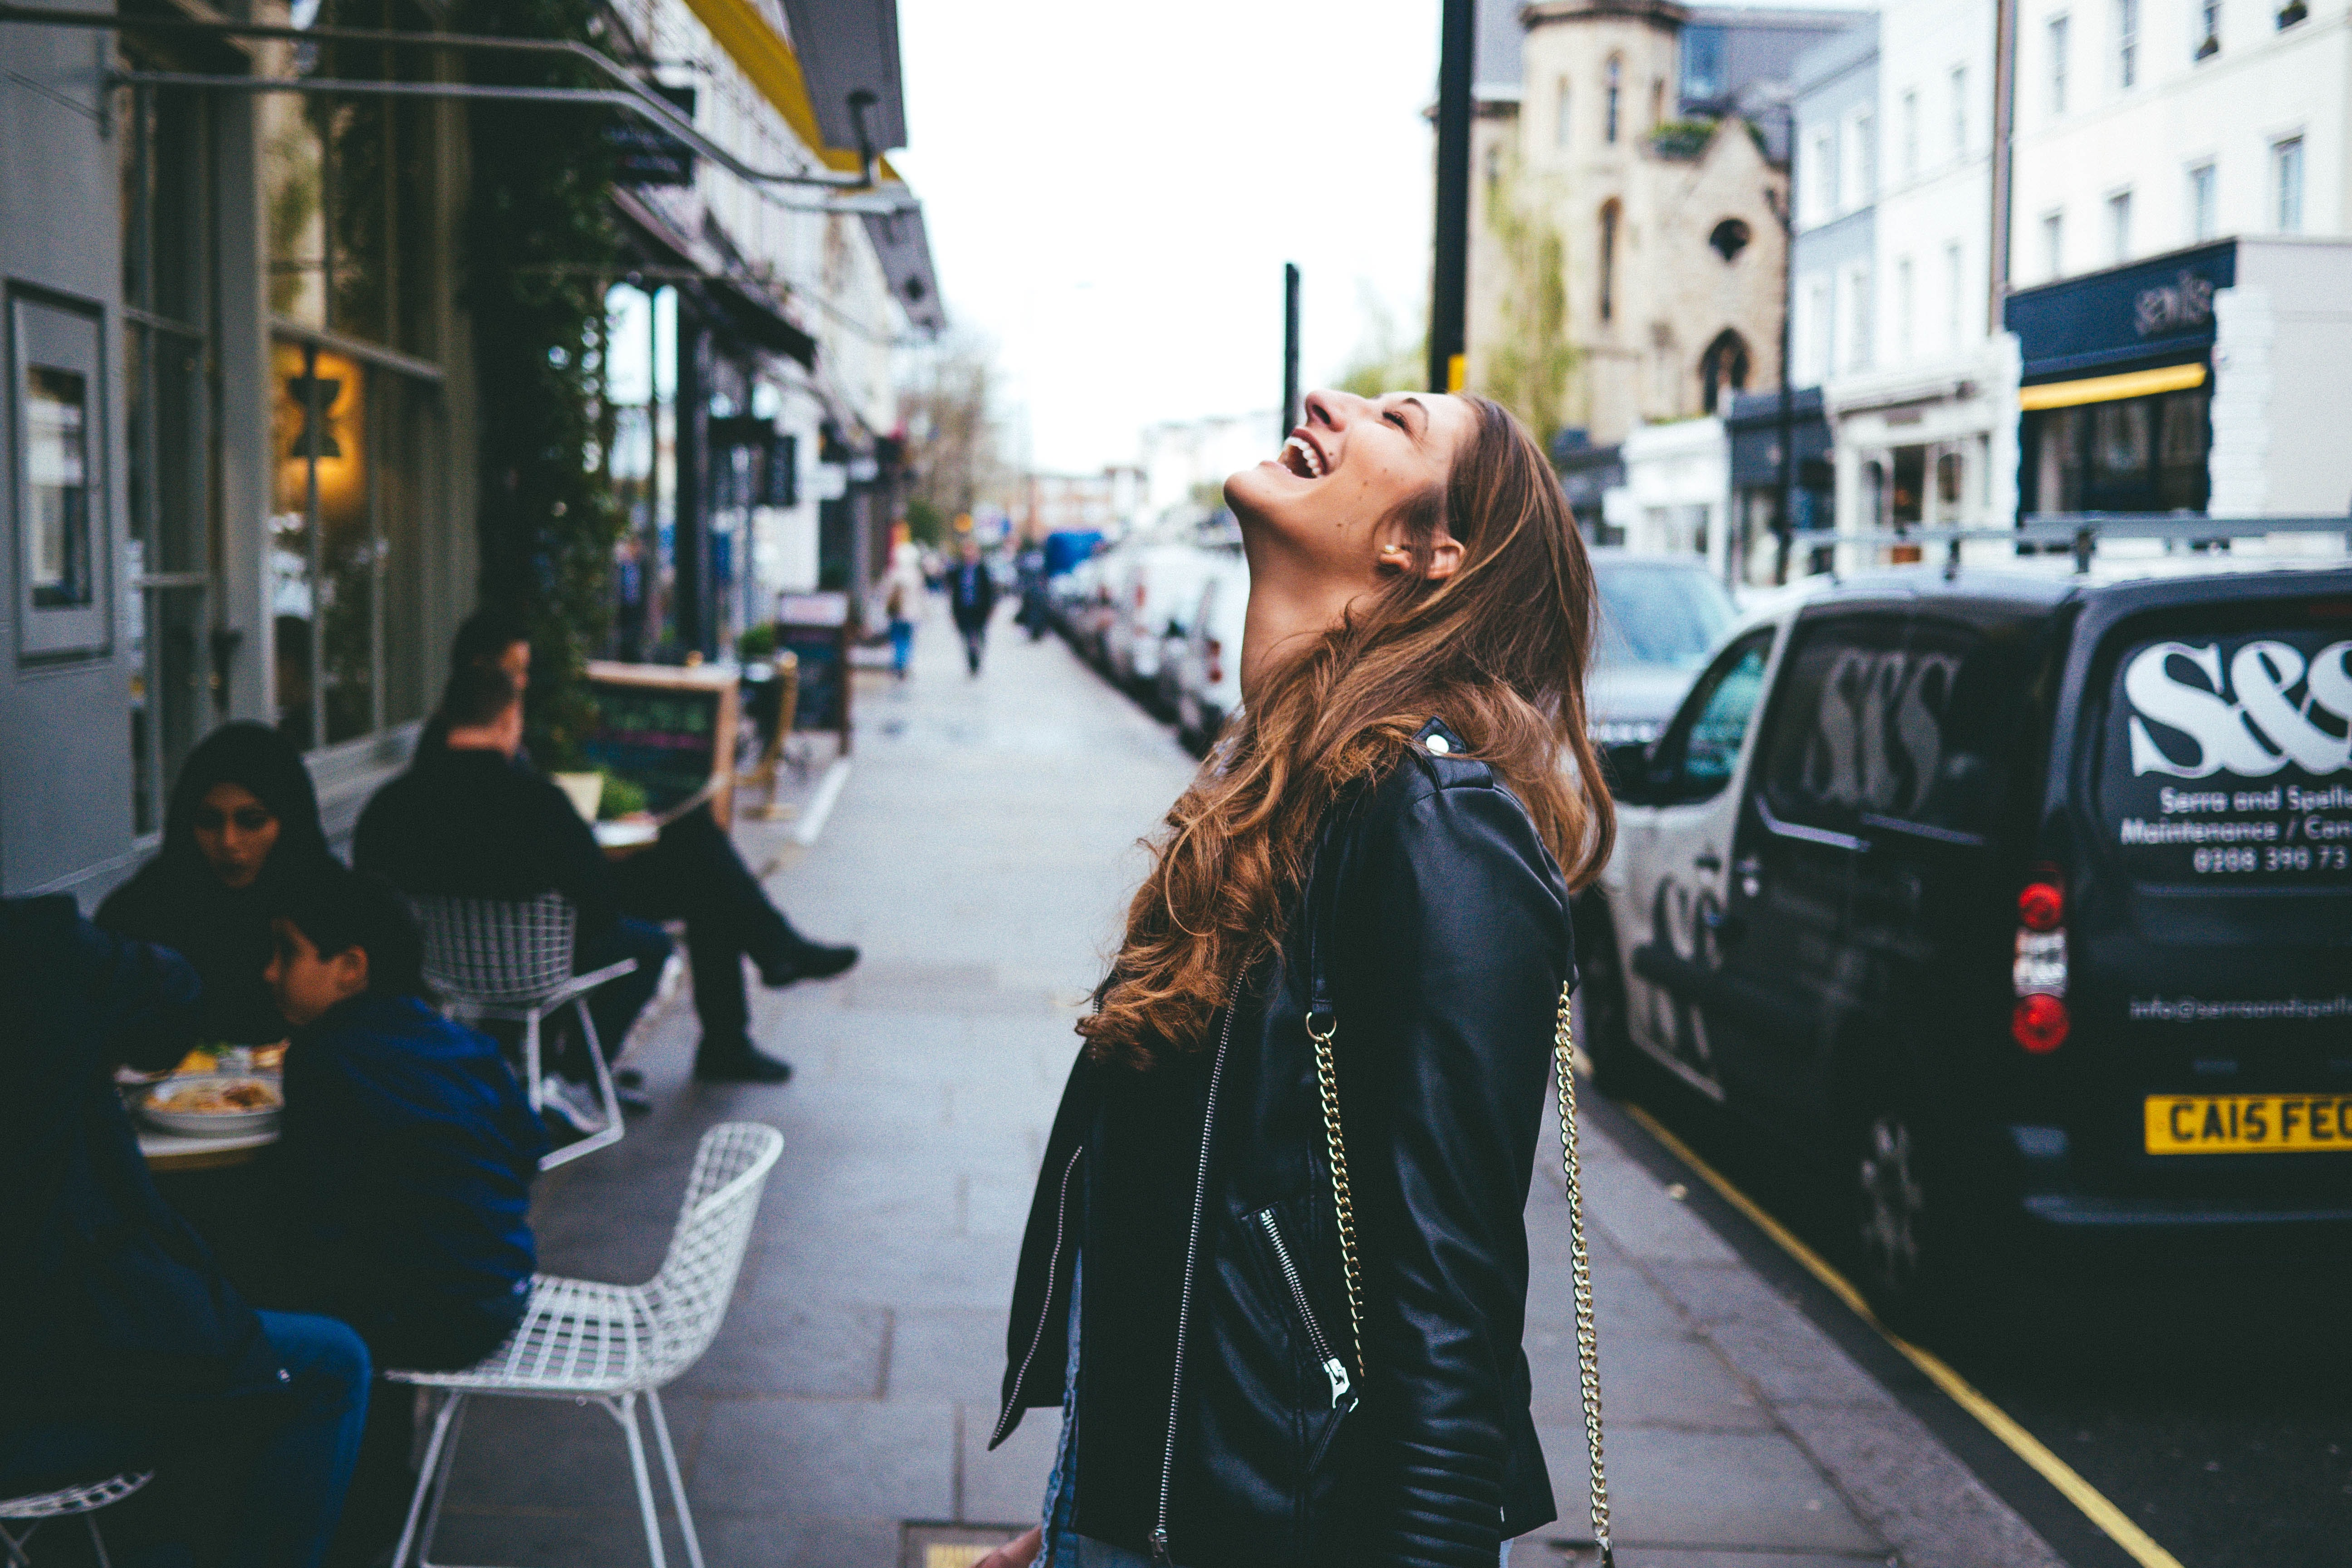 A woman in a leather jacket throws her head back and laughs on a city sidewalk